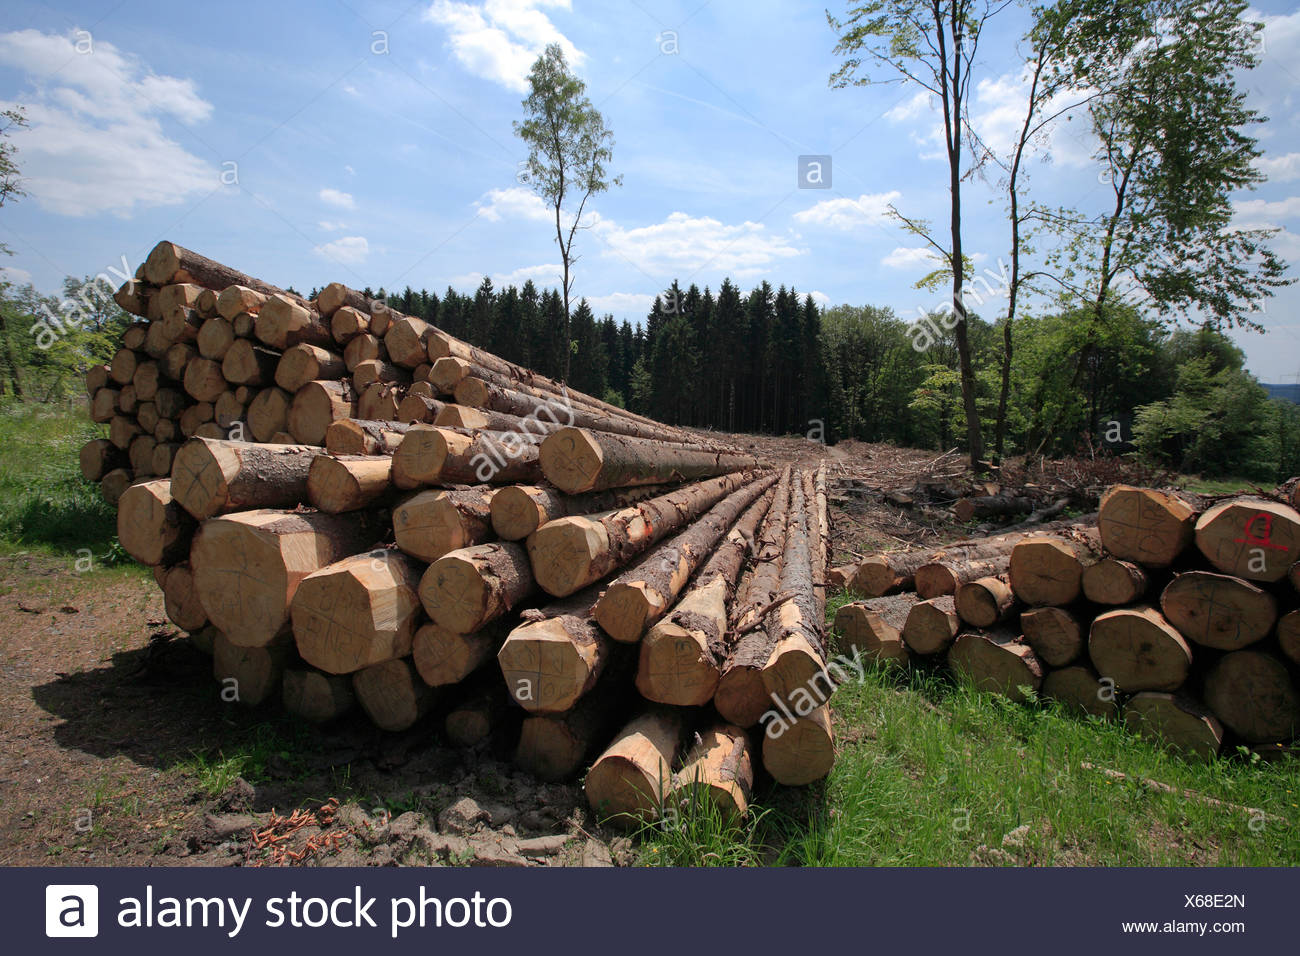 Timber harvesting, timber, spruces lying on the road, cleared area behind, Wipperfuerth, North Rhine-Westphalia, Germany, Europe - Stock Image